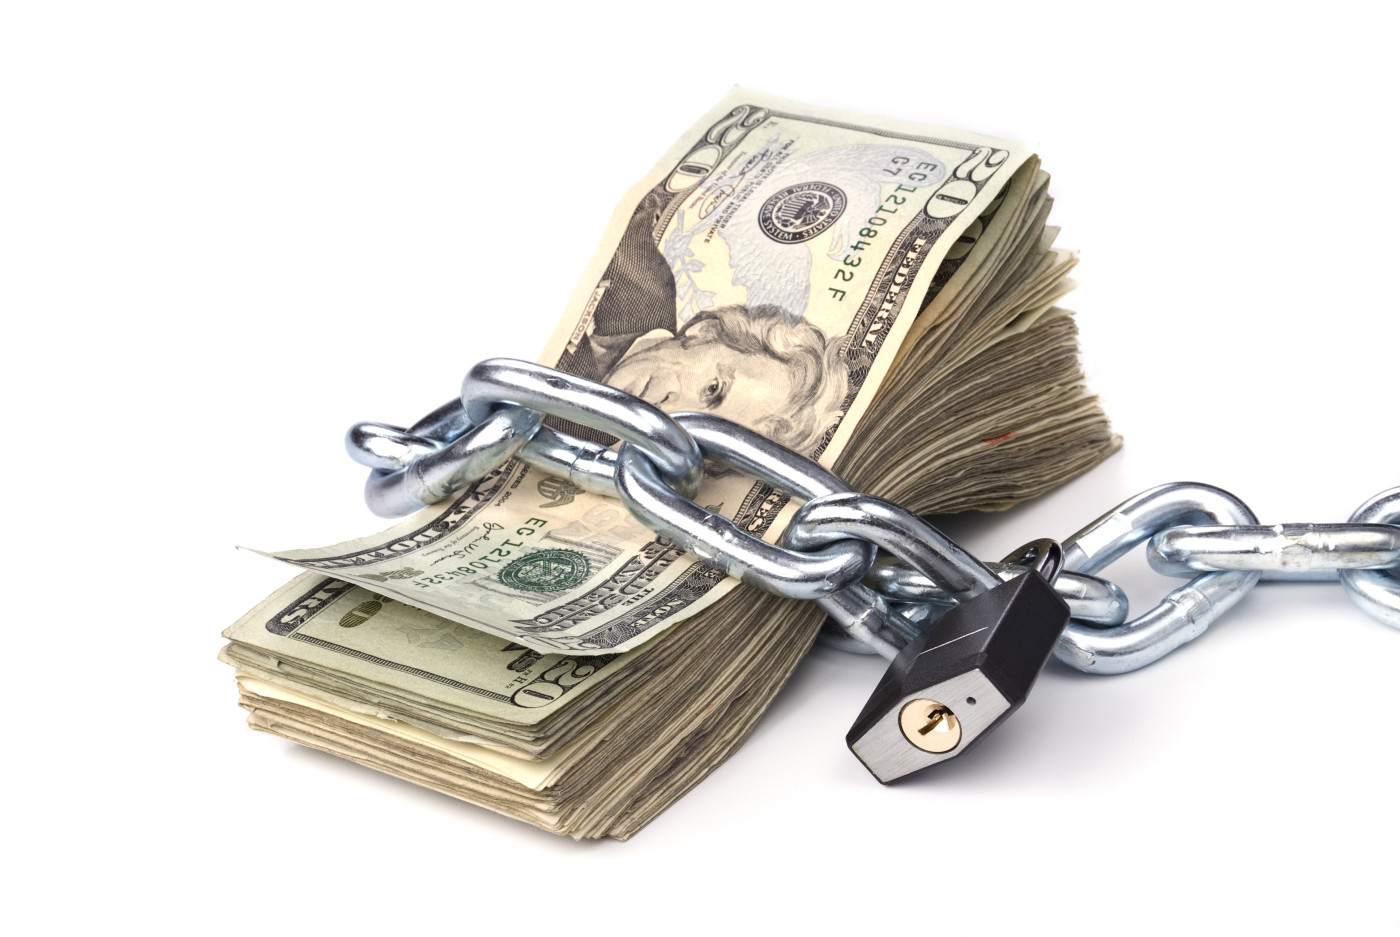 money chained up